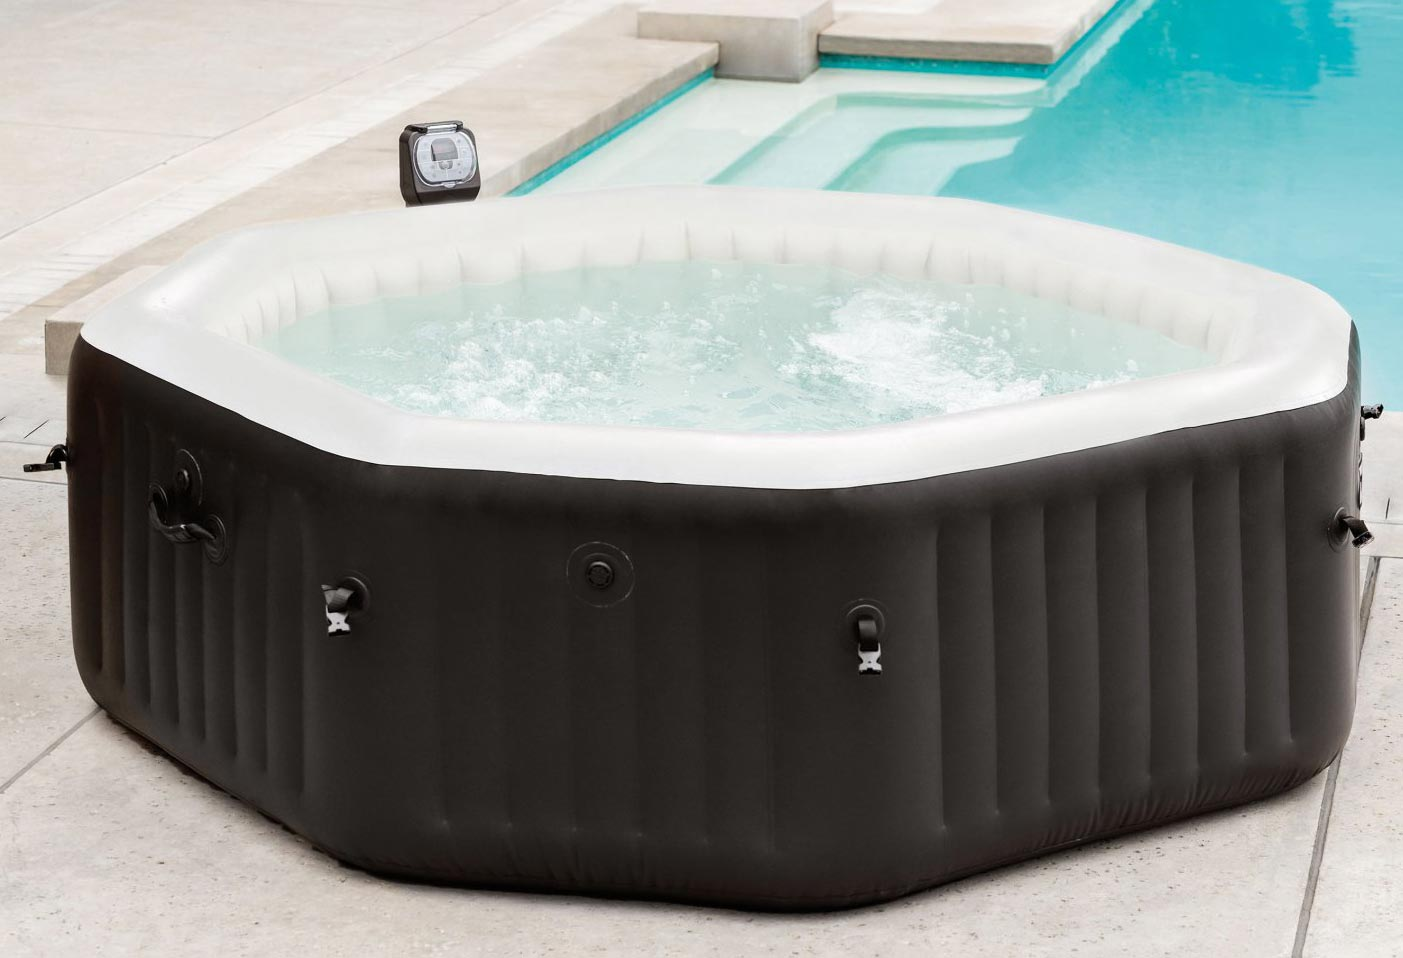 intex pure spa deluxe octagon whirlpool aufblasbar mit jets und bubble 4 person 78257284542 ebay. Black Bedroom Furniture Sets. Home Design Ideas